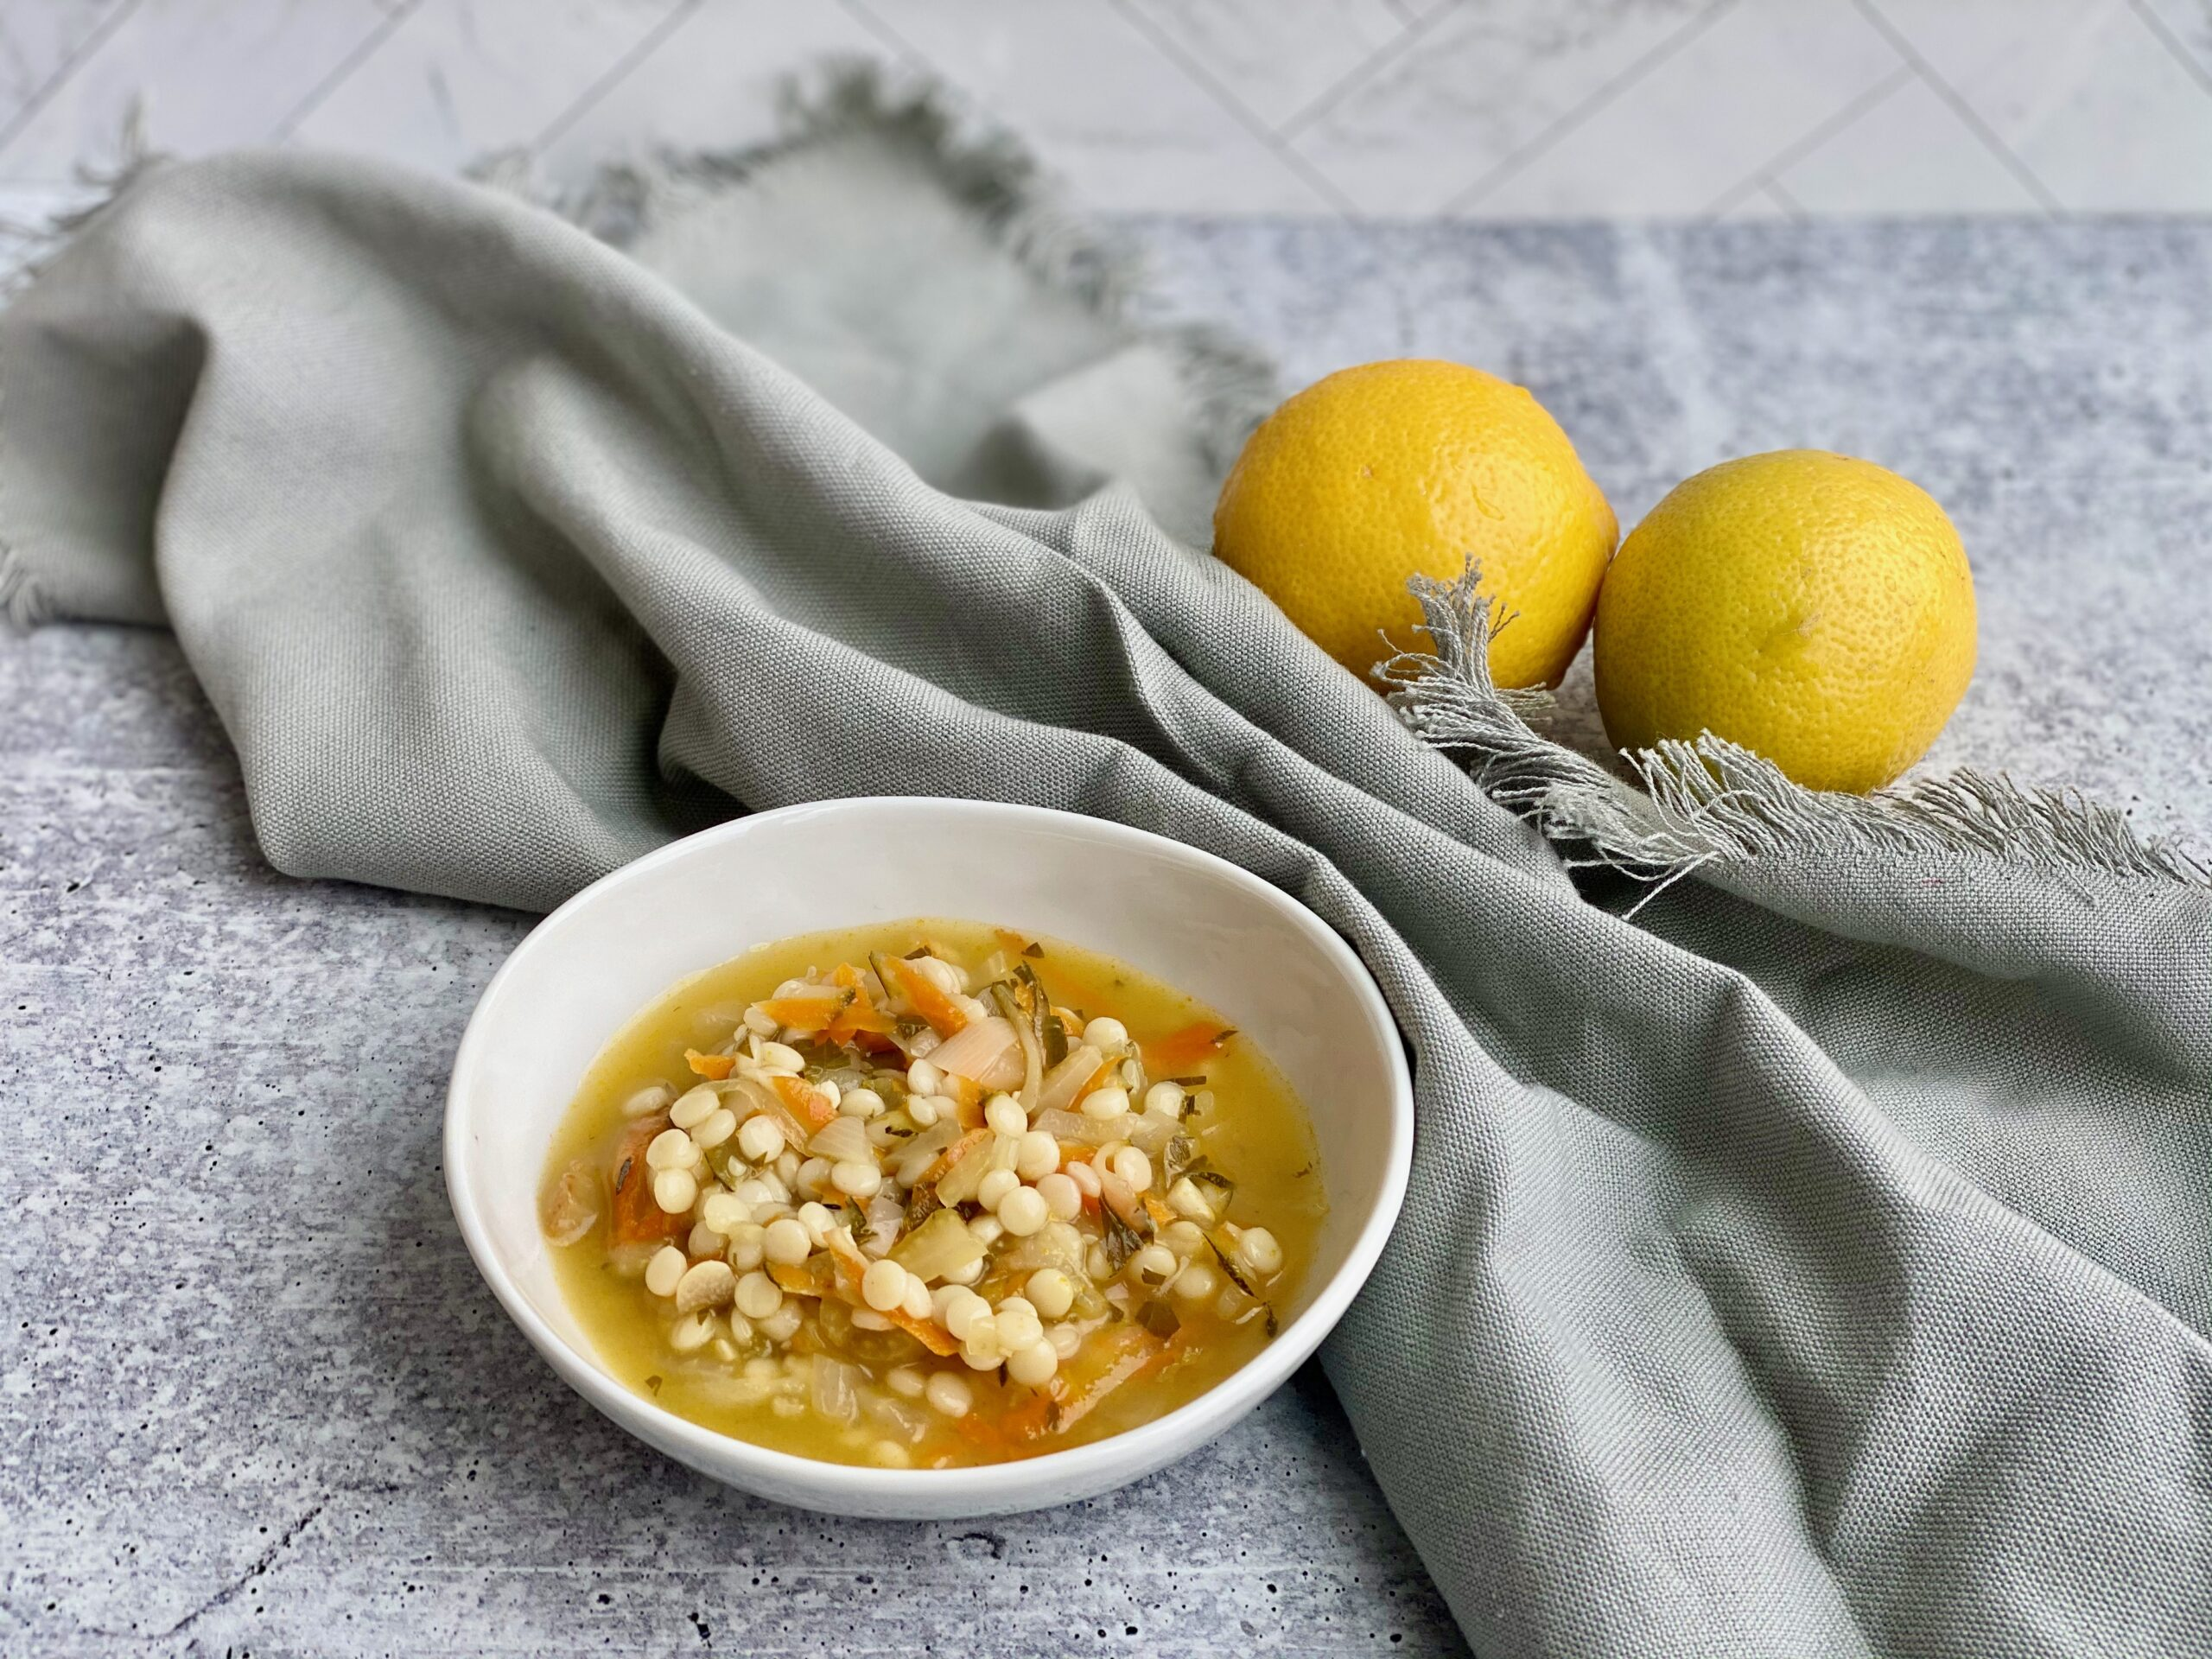 Picture of a bowl of soup with lemons in the background